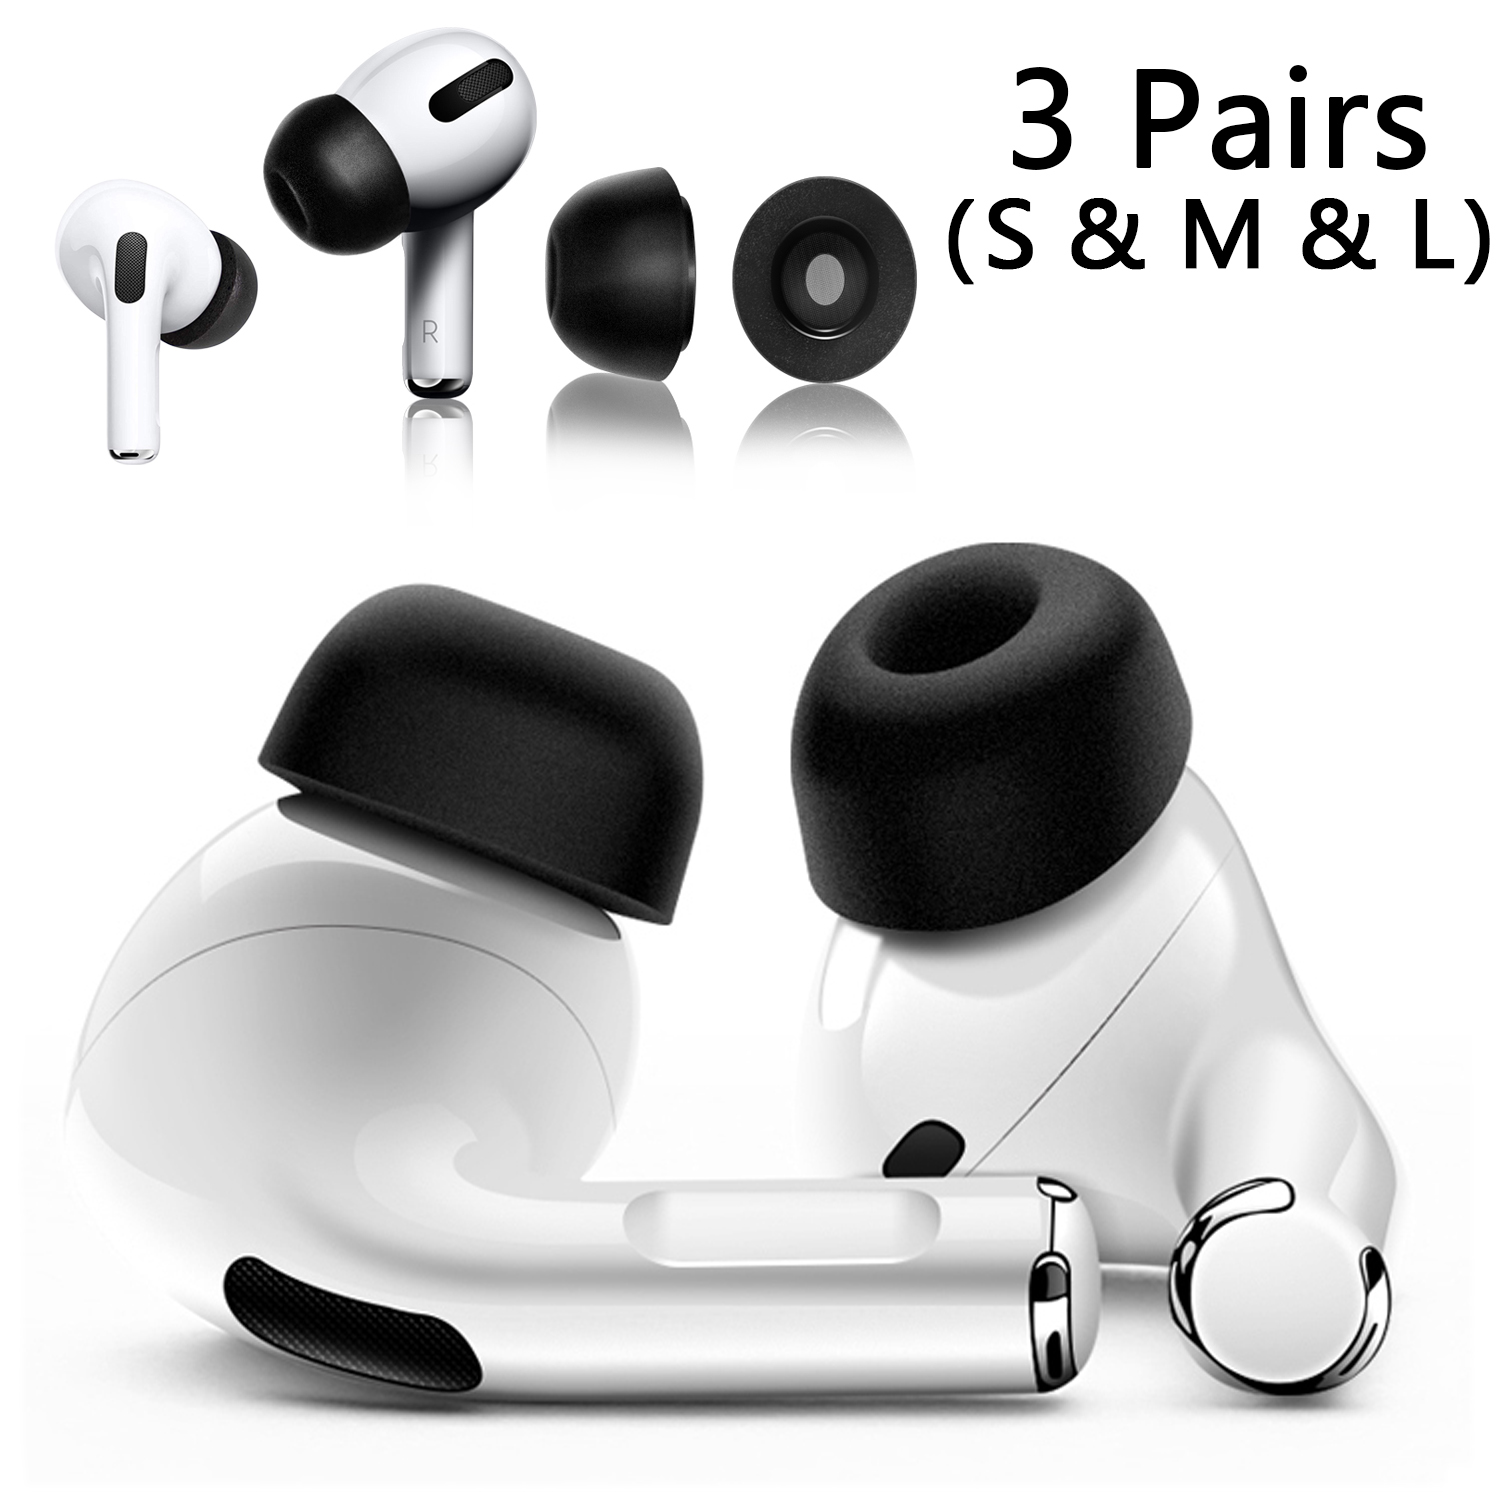 Memory Foam Ear Tips Compatible with Airpods Pro, S/M/L Replacement Airpod pro Earbuds Anti-slip Tips Caps Compatible with Apple Airpods Pro